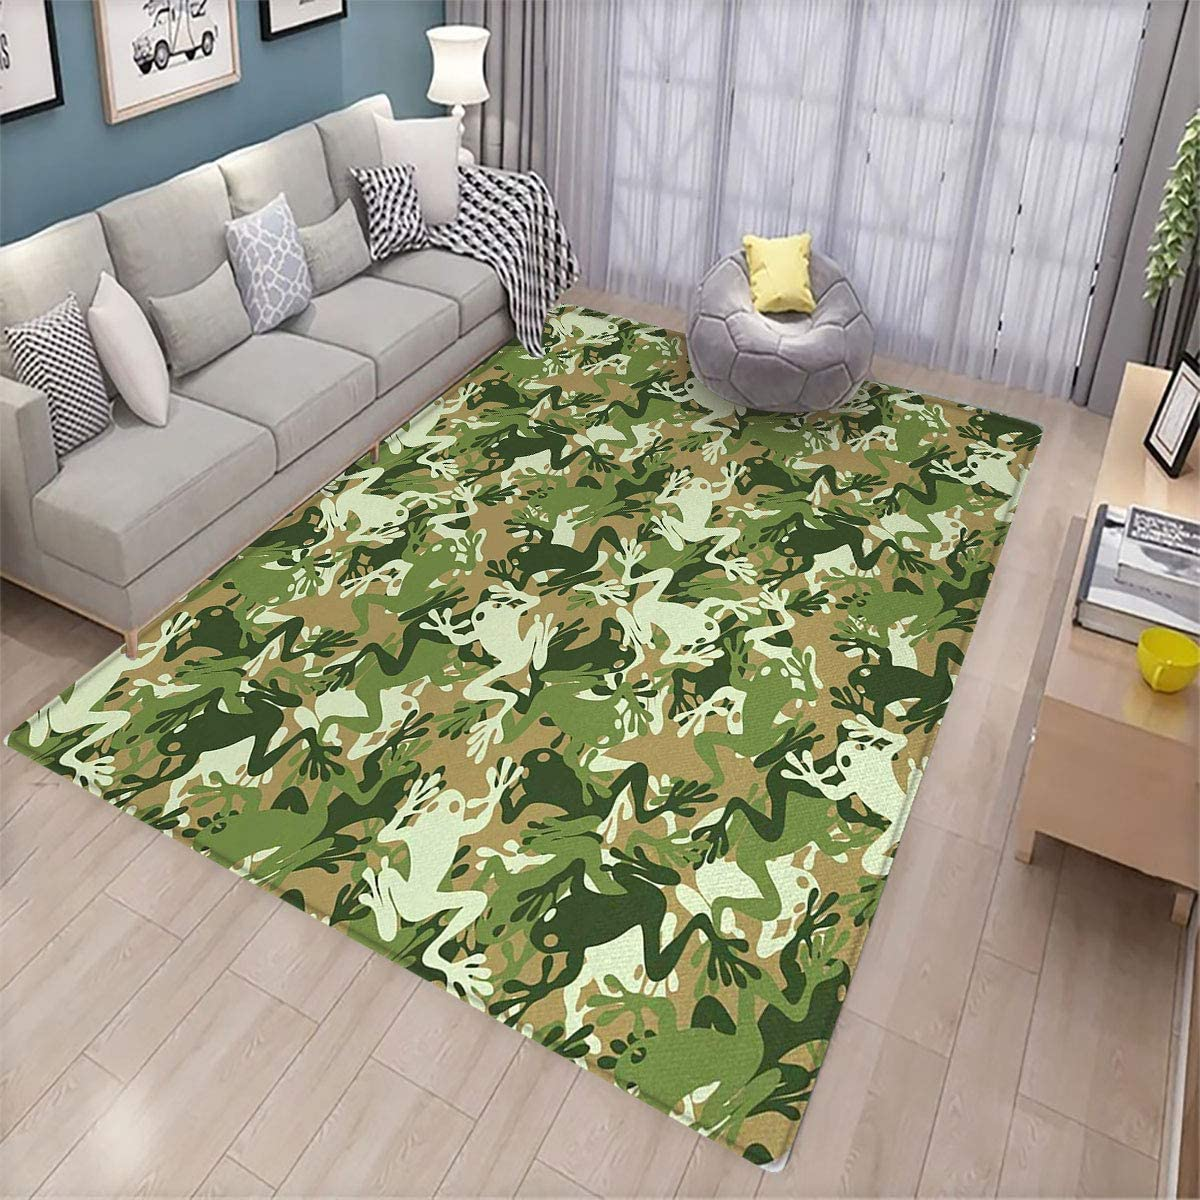 Amazon Com Animal Area Rug Bedroom Decor Skull Camouflage Military Design With Various Frog Pattern Different Tones Art Can Be Used For Floor Decoration 6 X9 Sage Pine Green Kitchen Dining,Color Personality Test Blue Gold Green Orange Free